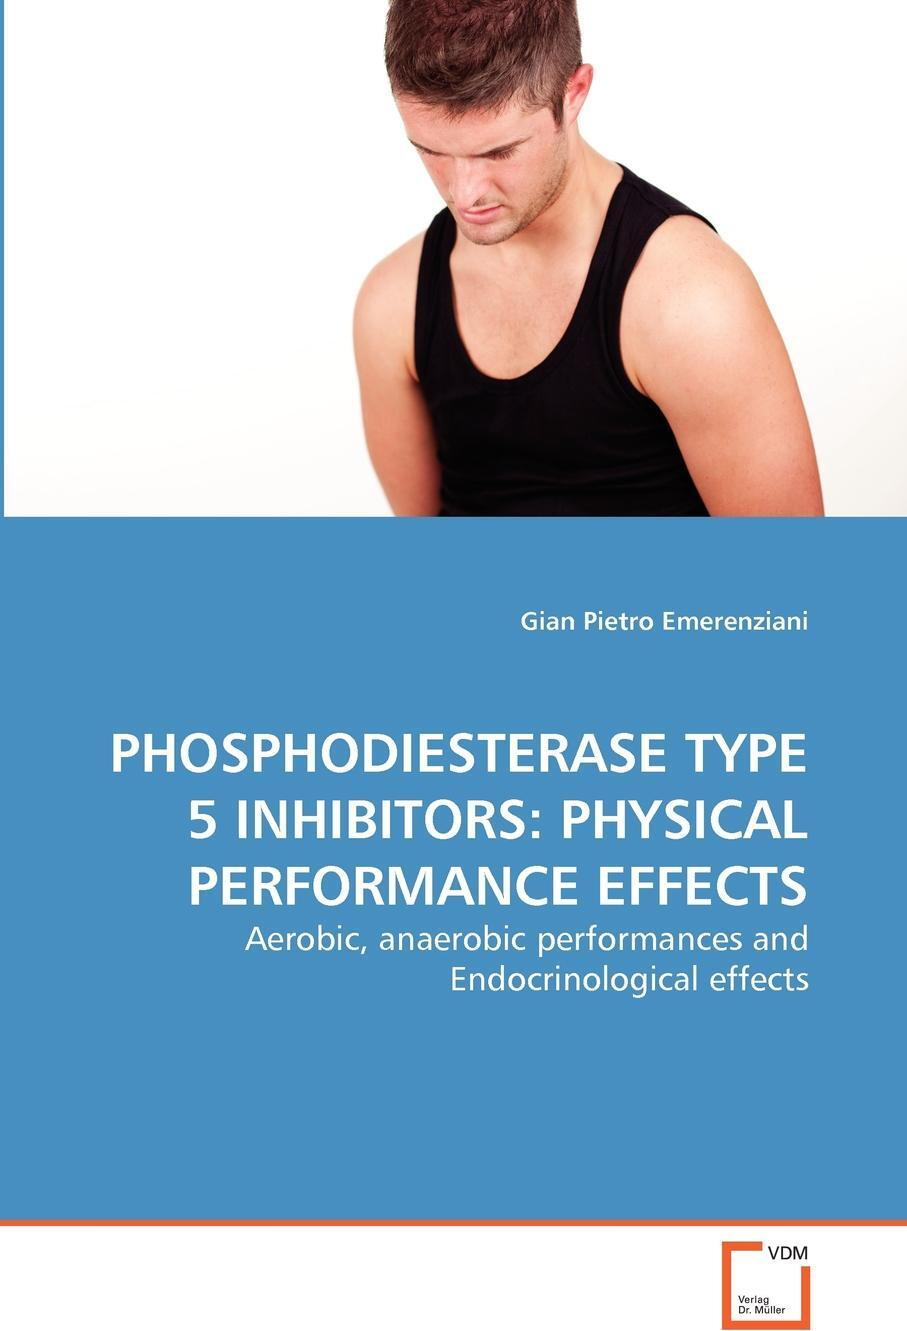 Phosphodiesterase type 5 inhibitors. Physical performance effects